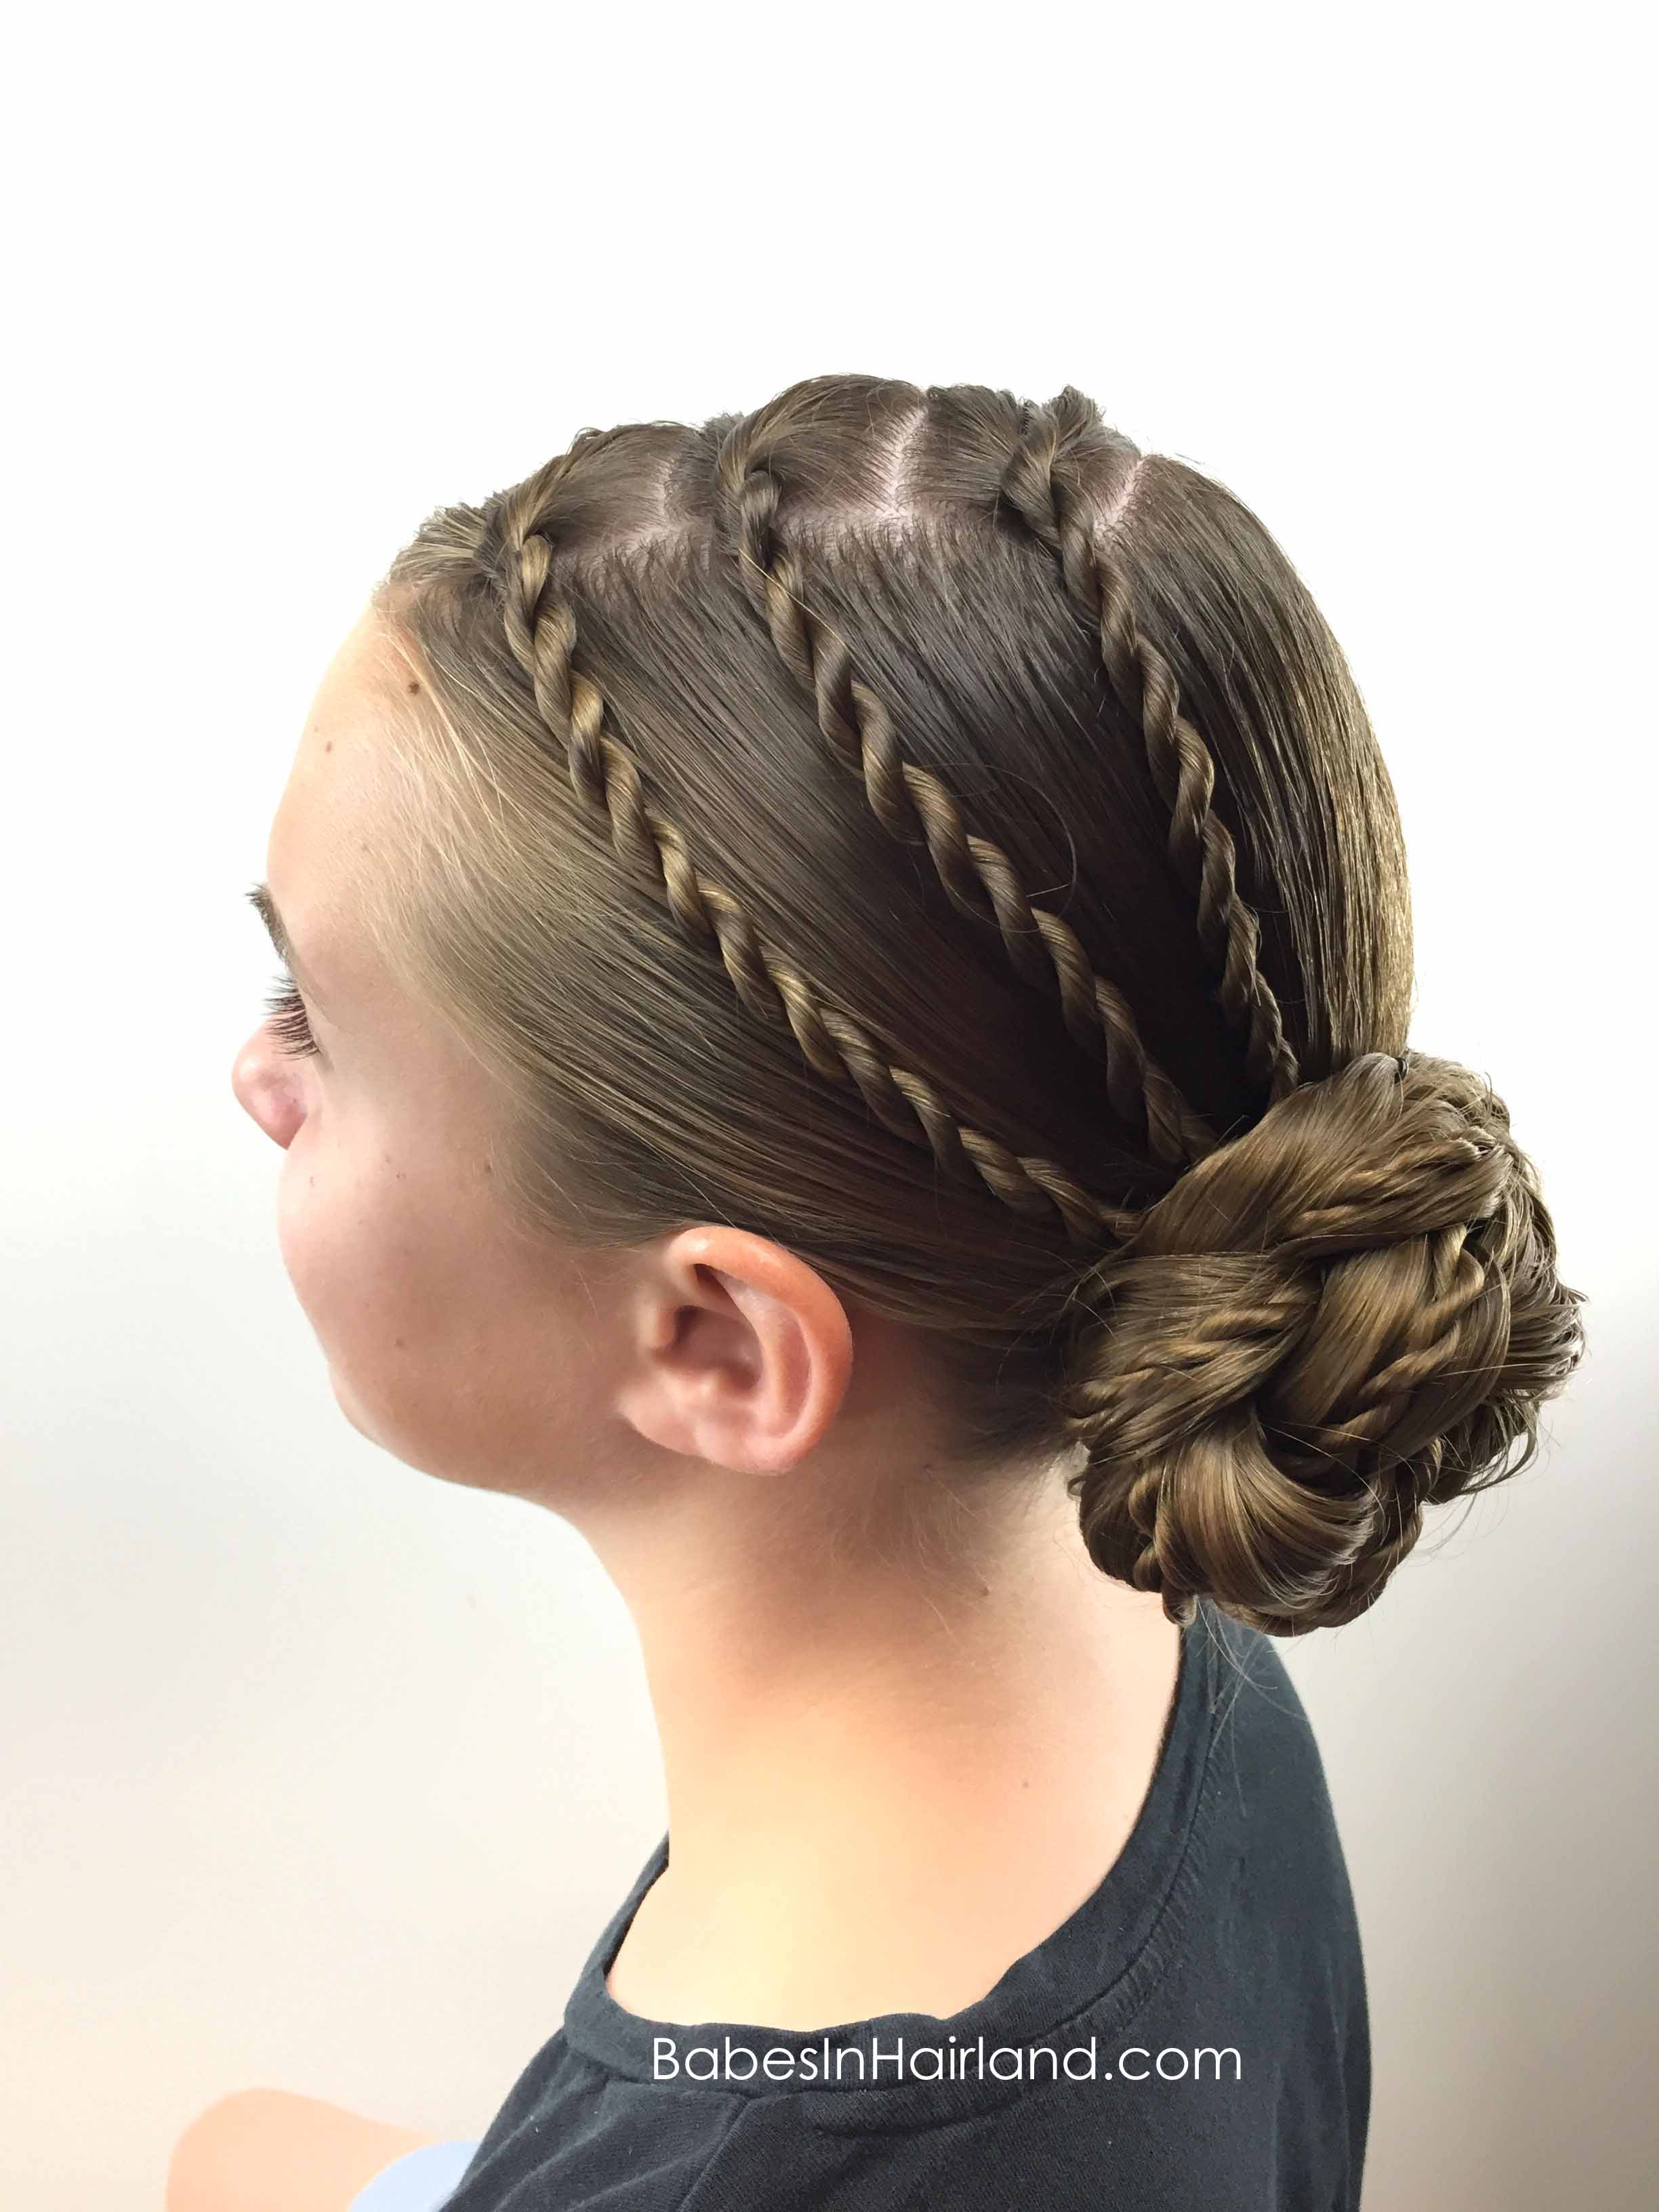 Triple Twists And Bun Babes In Hairland